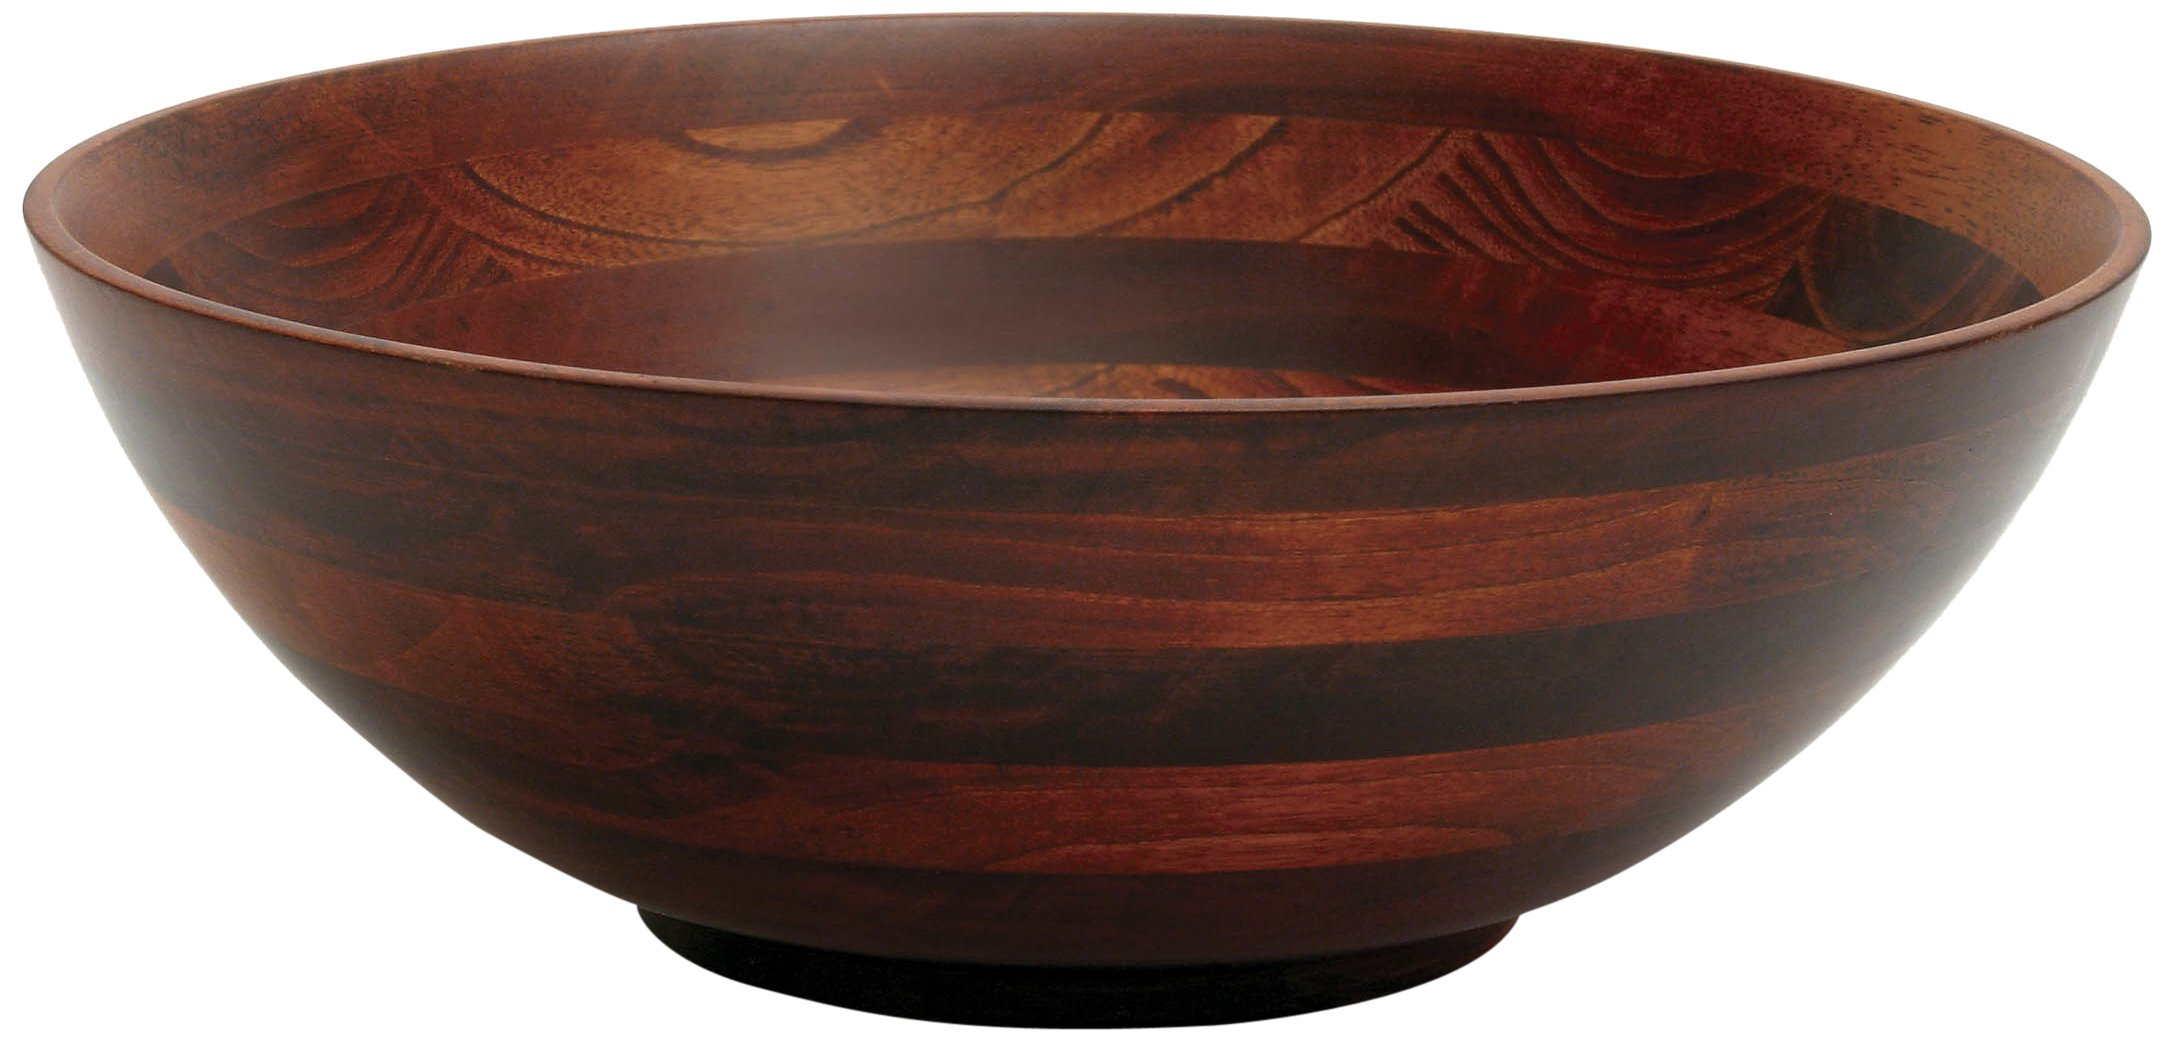 Lipper International 274 Cherry Finished Footed Serving Bowl for Fruits or Salads, Large, 13.75'' Diameter x 5'' Height, Single Bowl by Lipper International (Image #1)